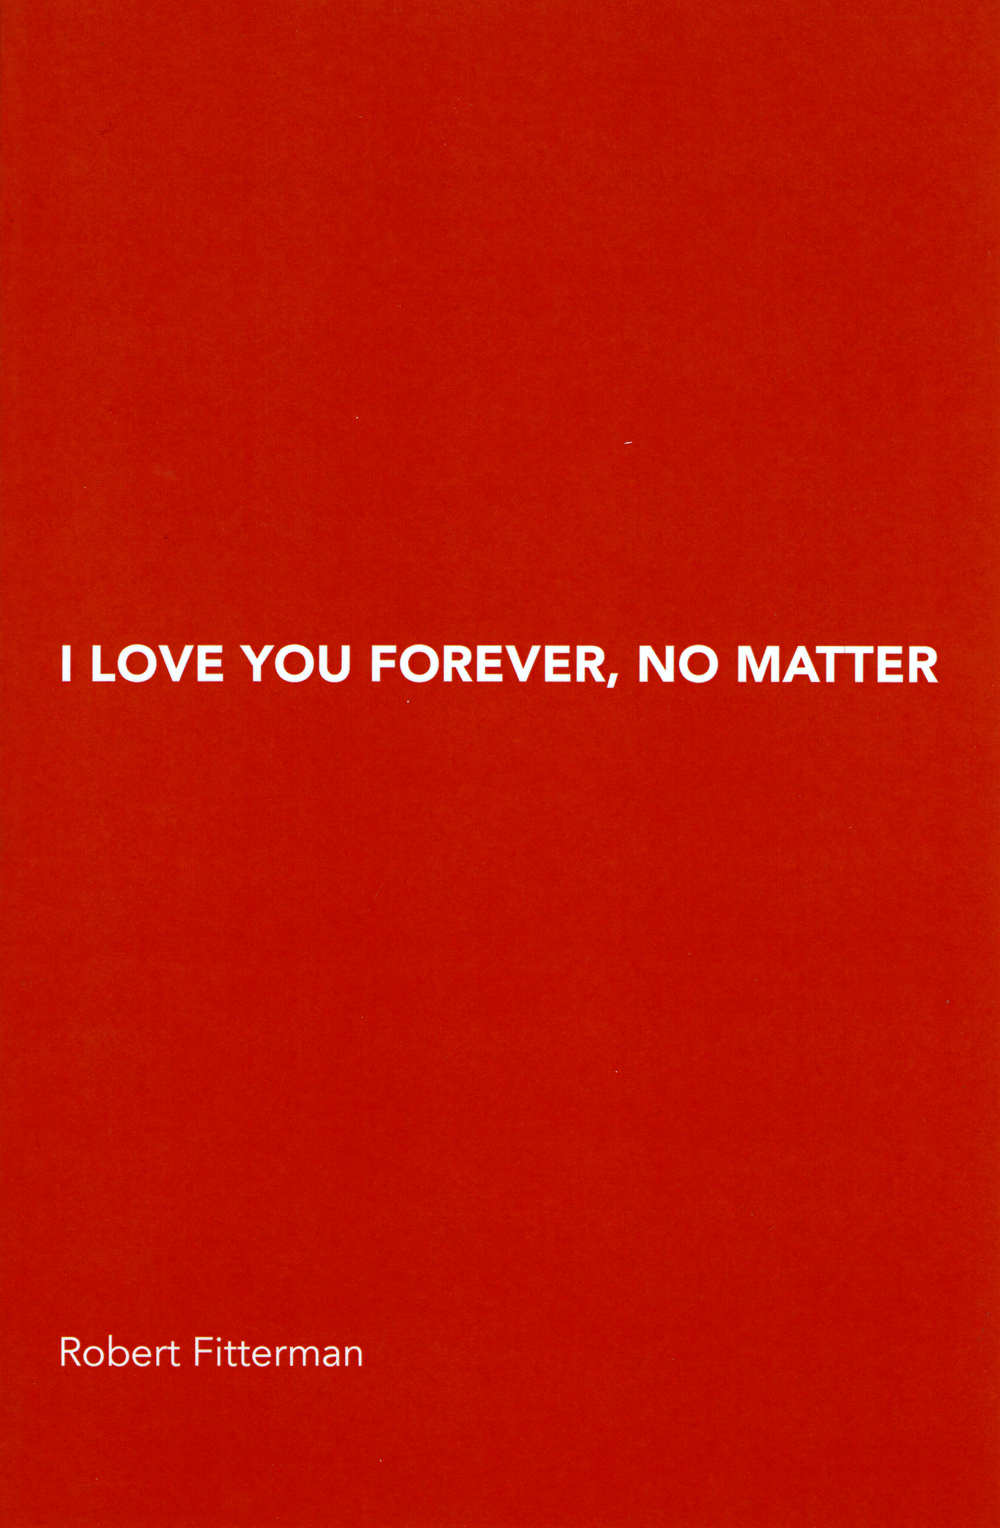 I Love You Forever, No Matter